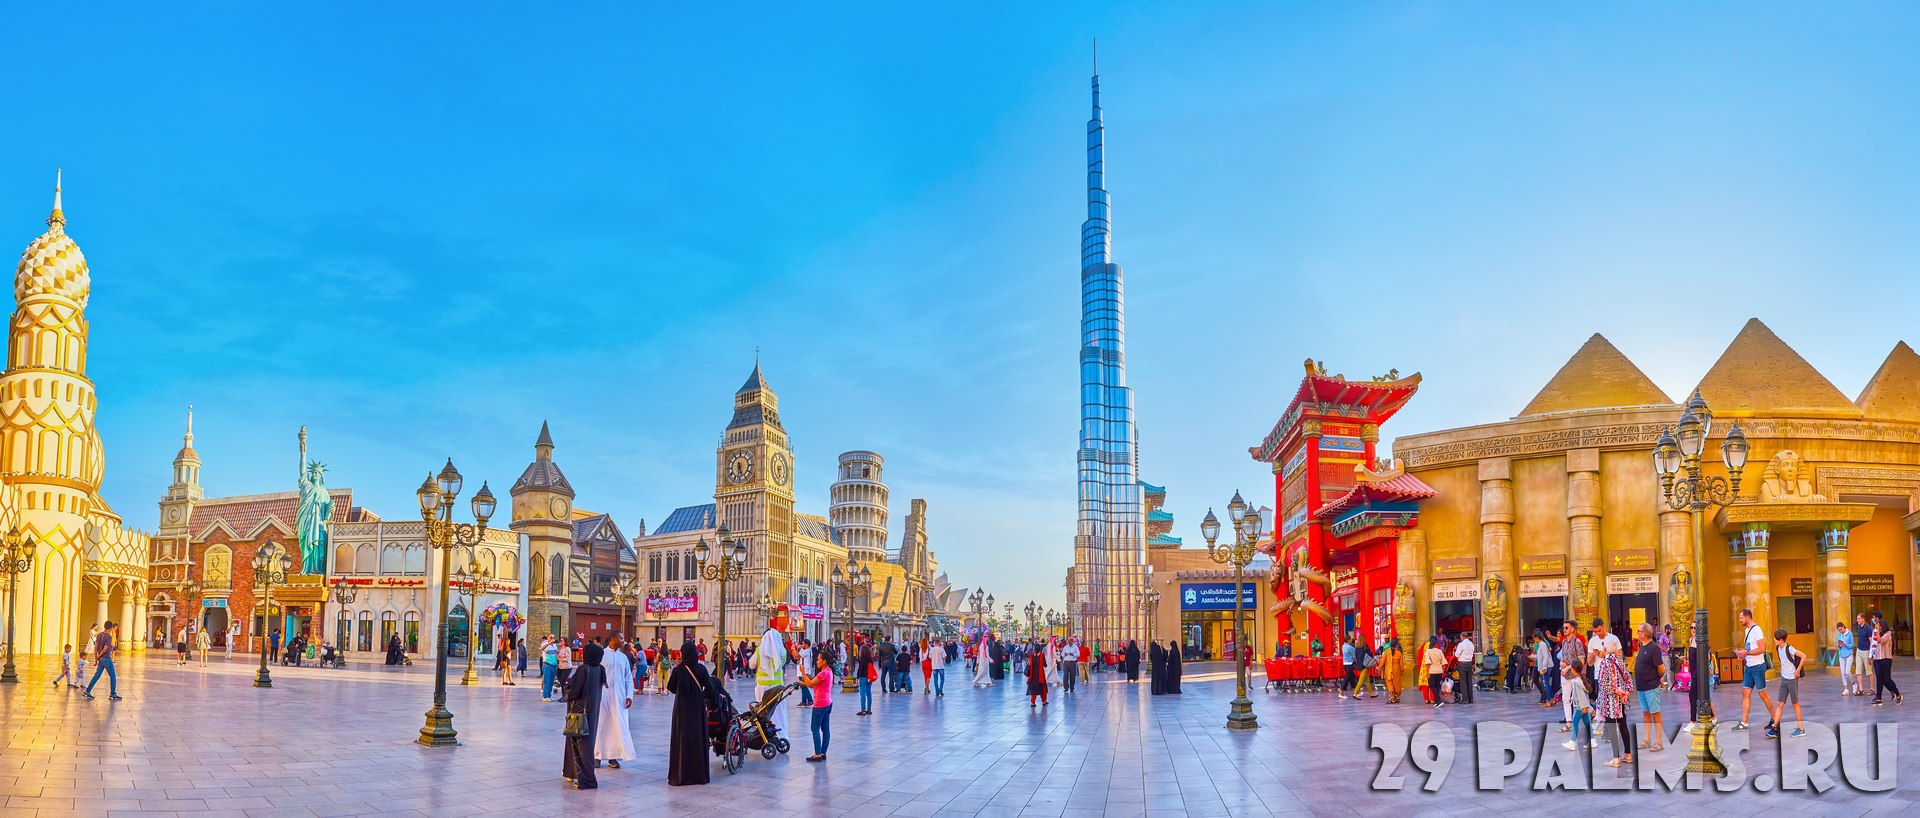 ОАЭ. Дубай. Panorama of crowded Global Village square with replicas of Egyptian temple and Pyramids, Burj Khalifa, US Liberty Statue in Dubai. Фото efesenko-Deposit